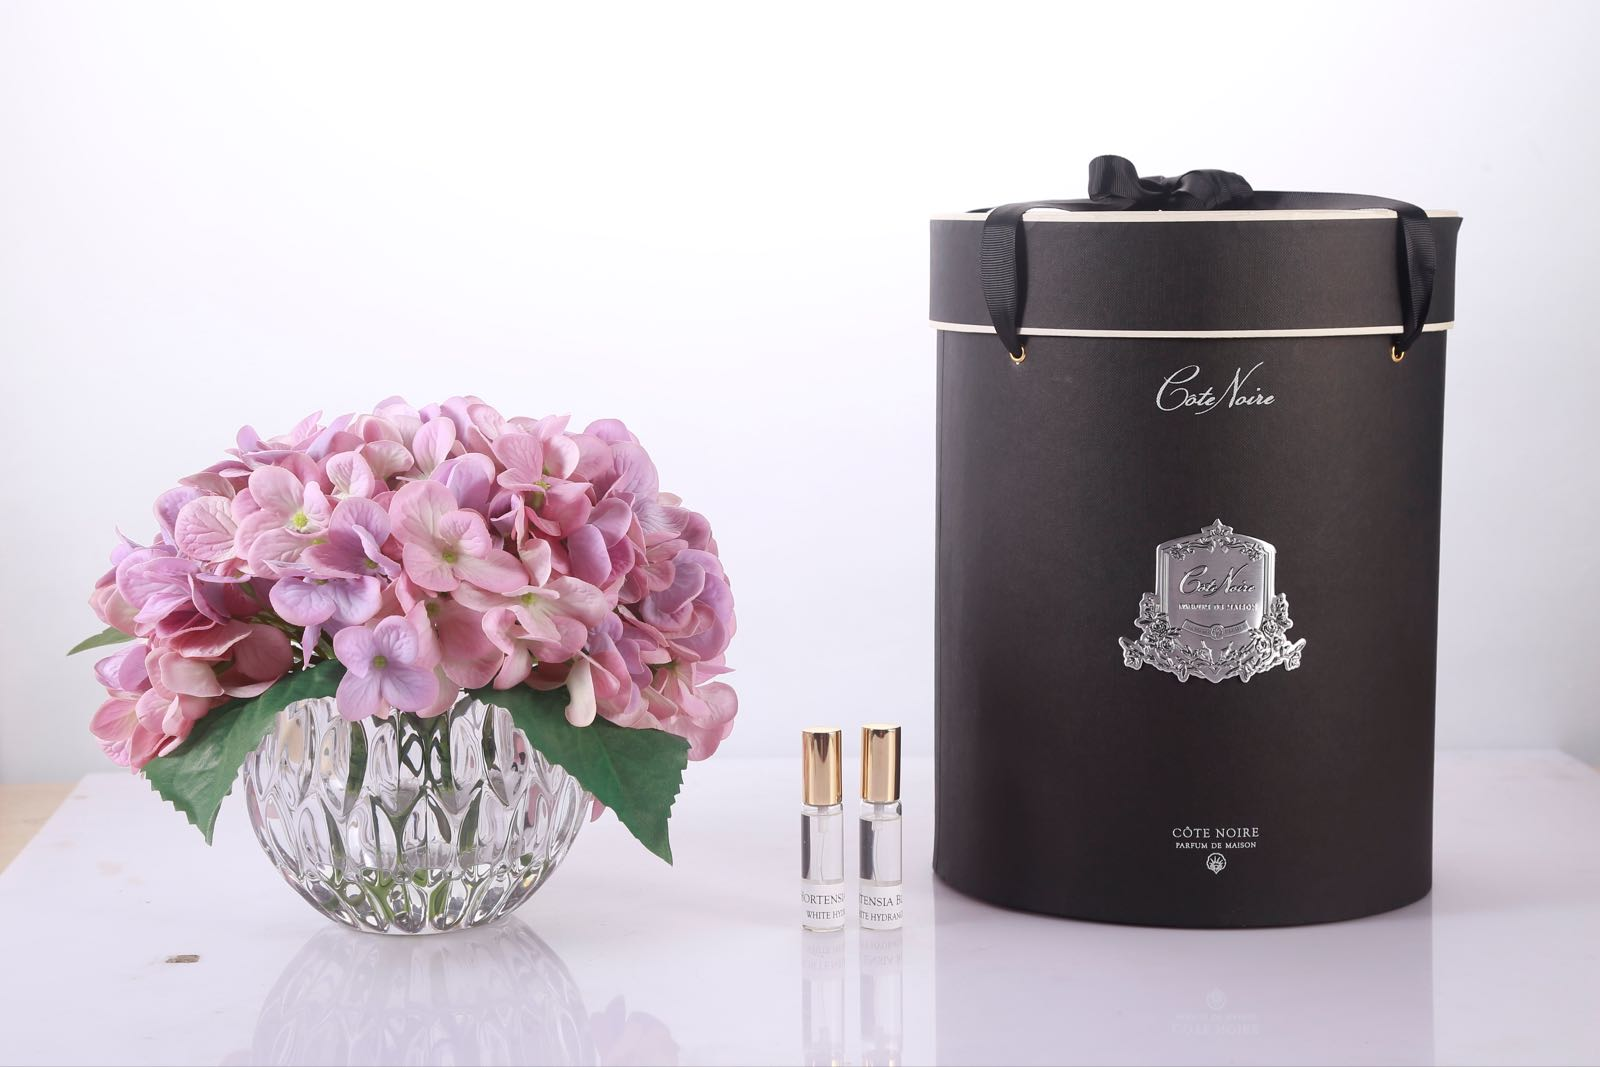 Cote noire fragranced Pink Hydrangea with hat box and fragrance in a crystal vase